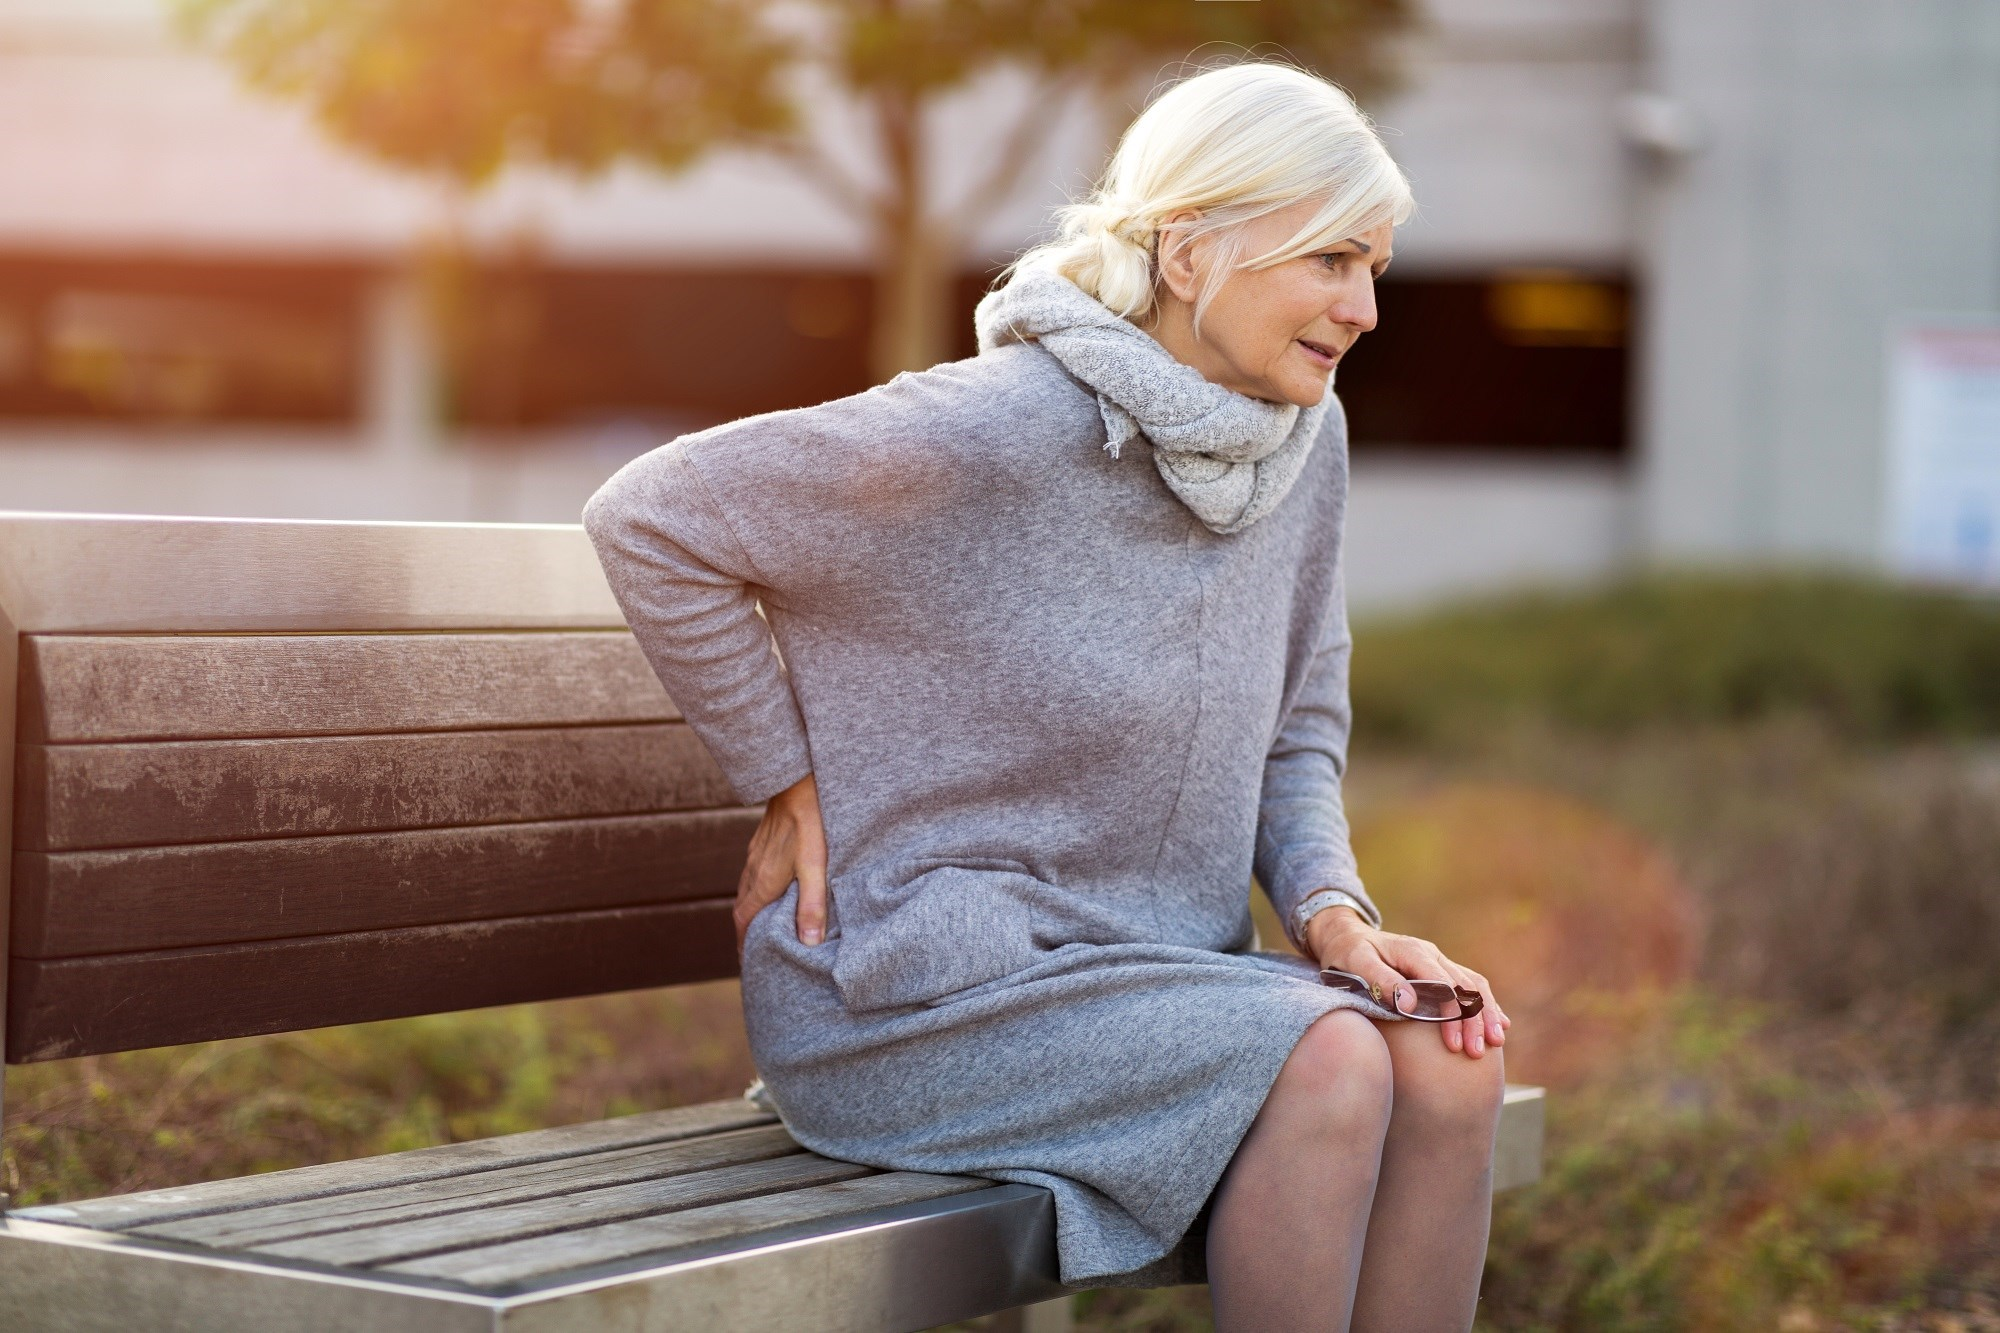 Persistent Back Pain Linked to Earlier Mortality in Older Women